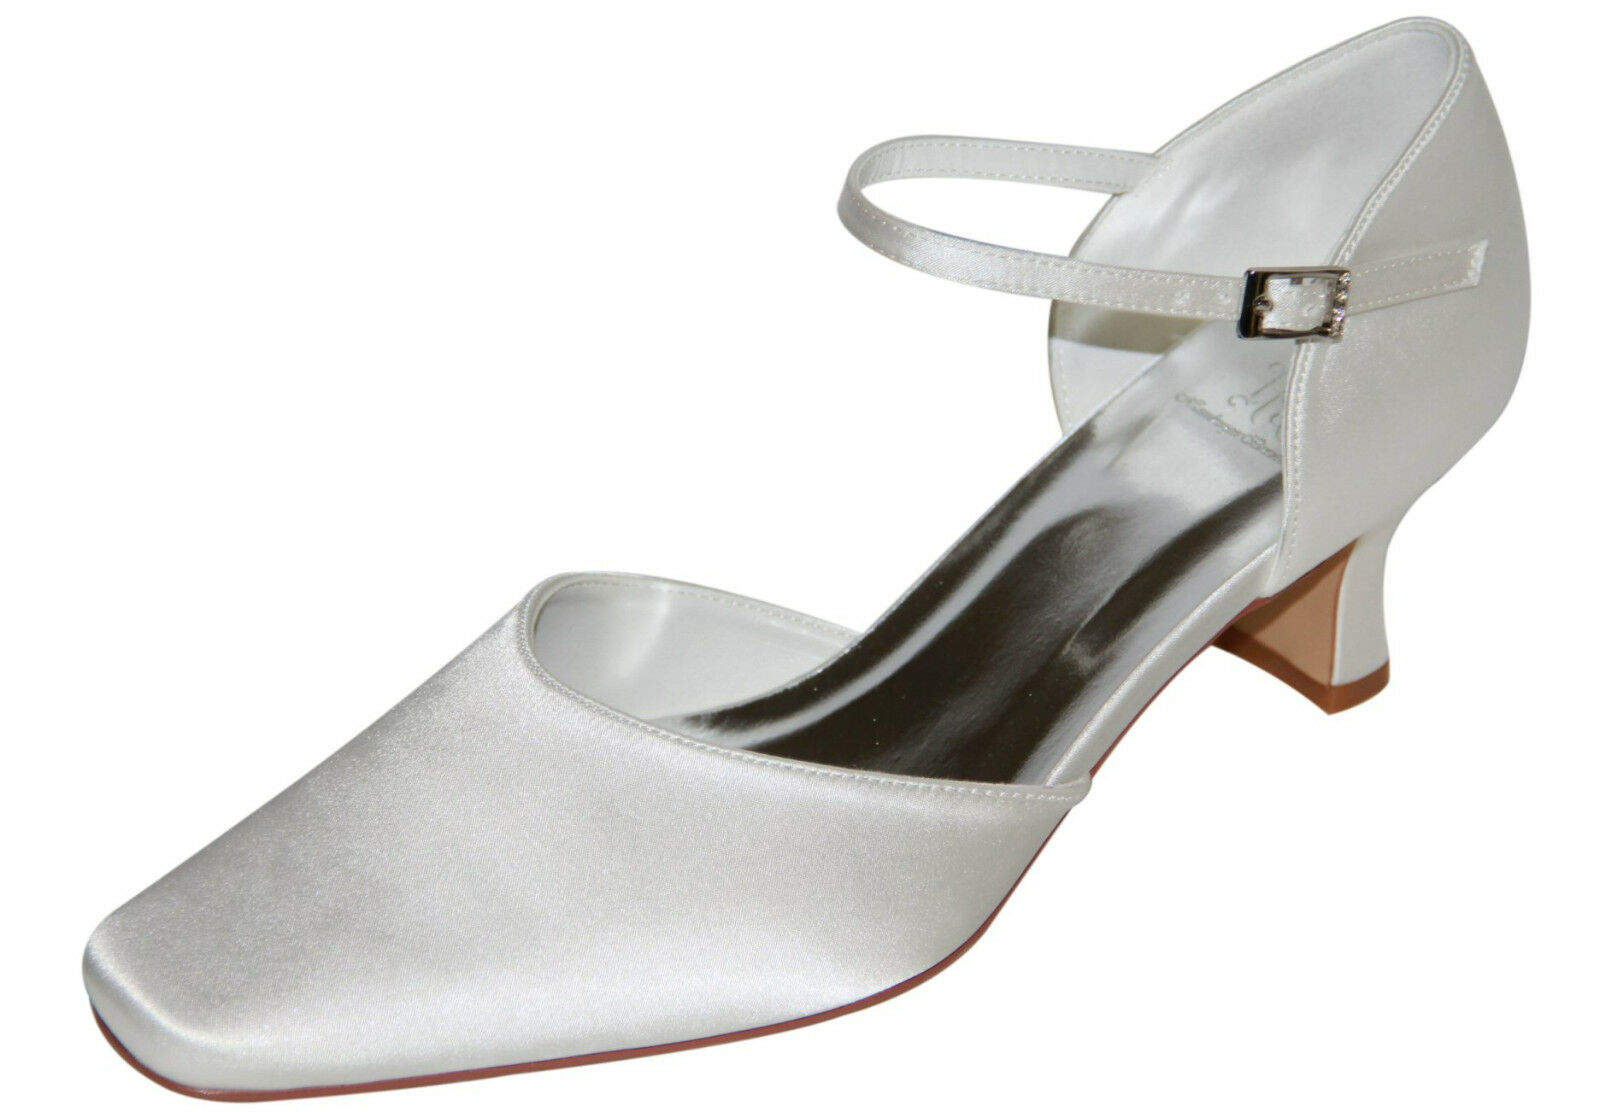 HBH Satin Bridal Shoes, Soft lined interior with Delicate Leather Straps, 5cm Heel